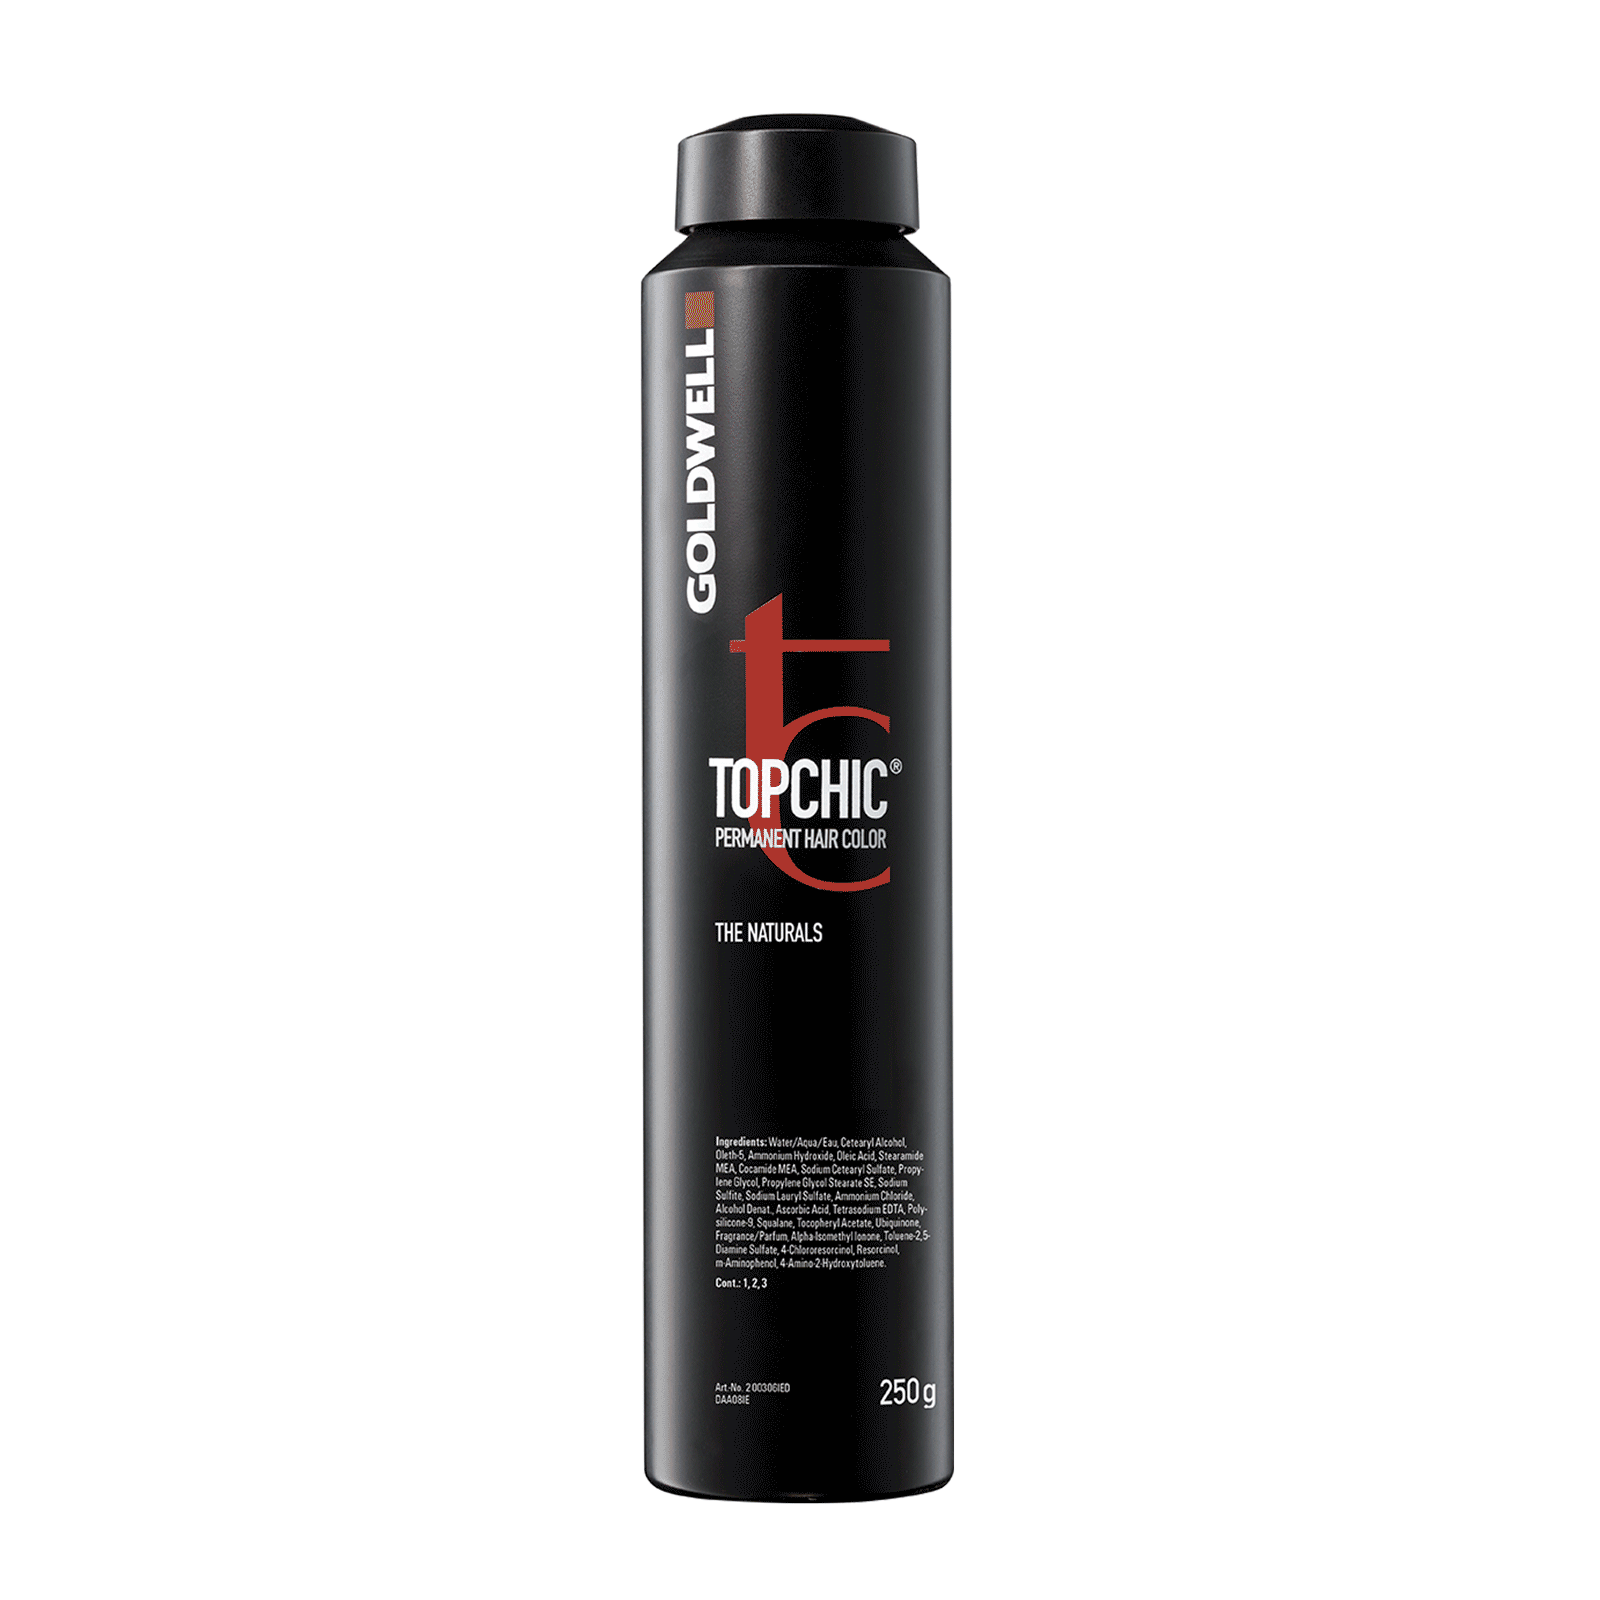 Topchic Permanent Hair Color Canisters Goldwell Usa Cosmoprof